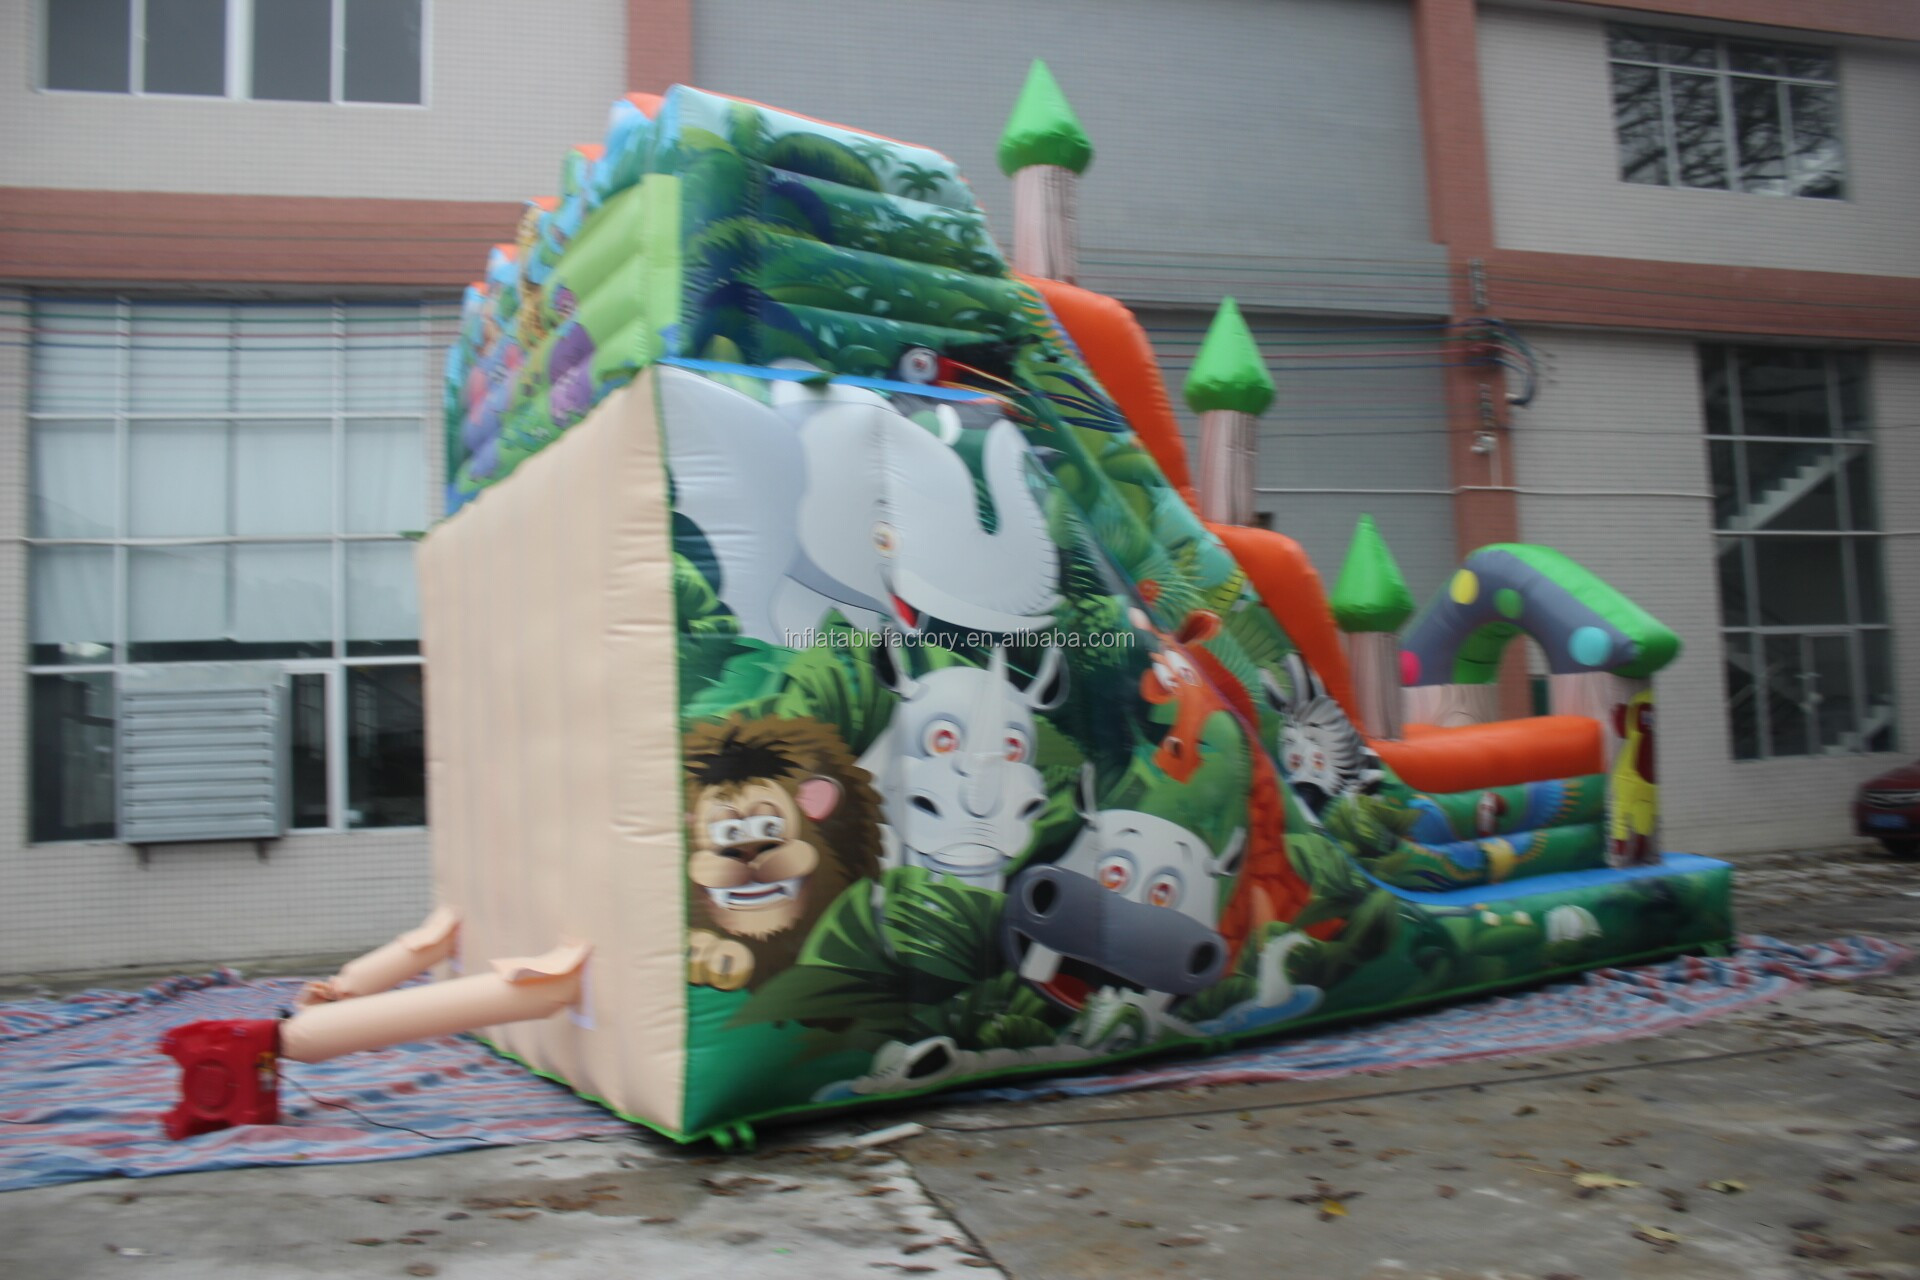 Children's toys inflatable slide for outdoor activities